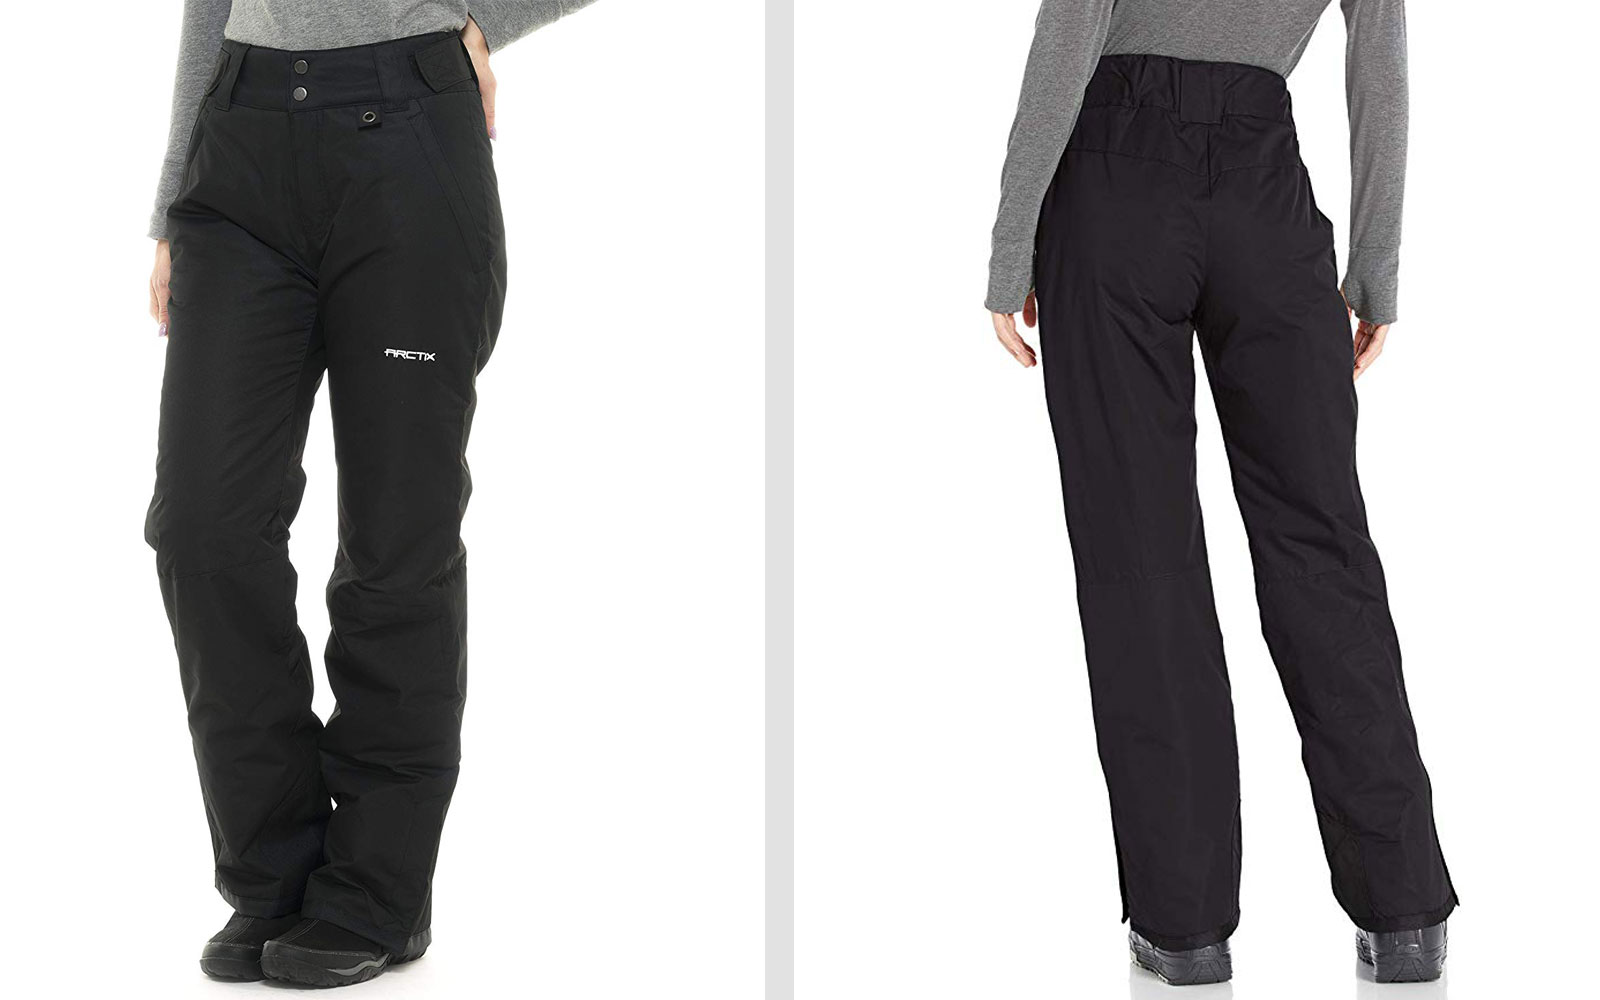 Front and Back of Black Women's Snow Pants